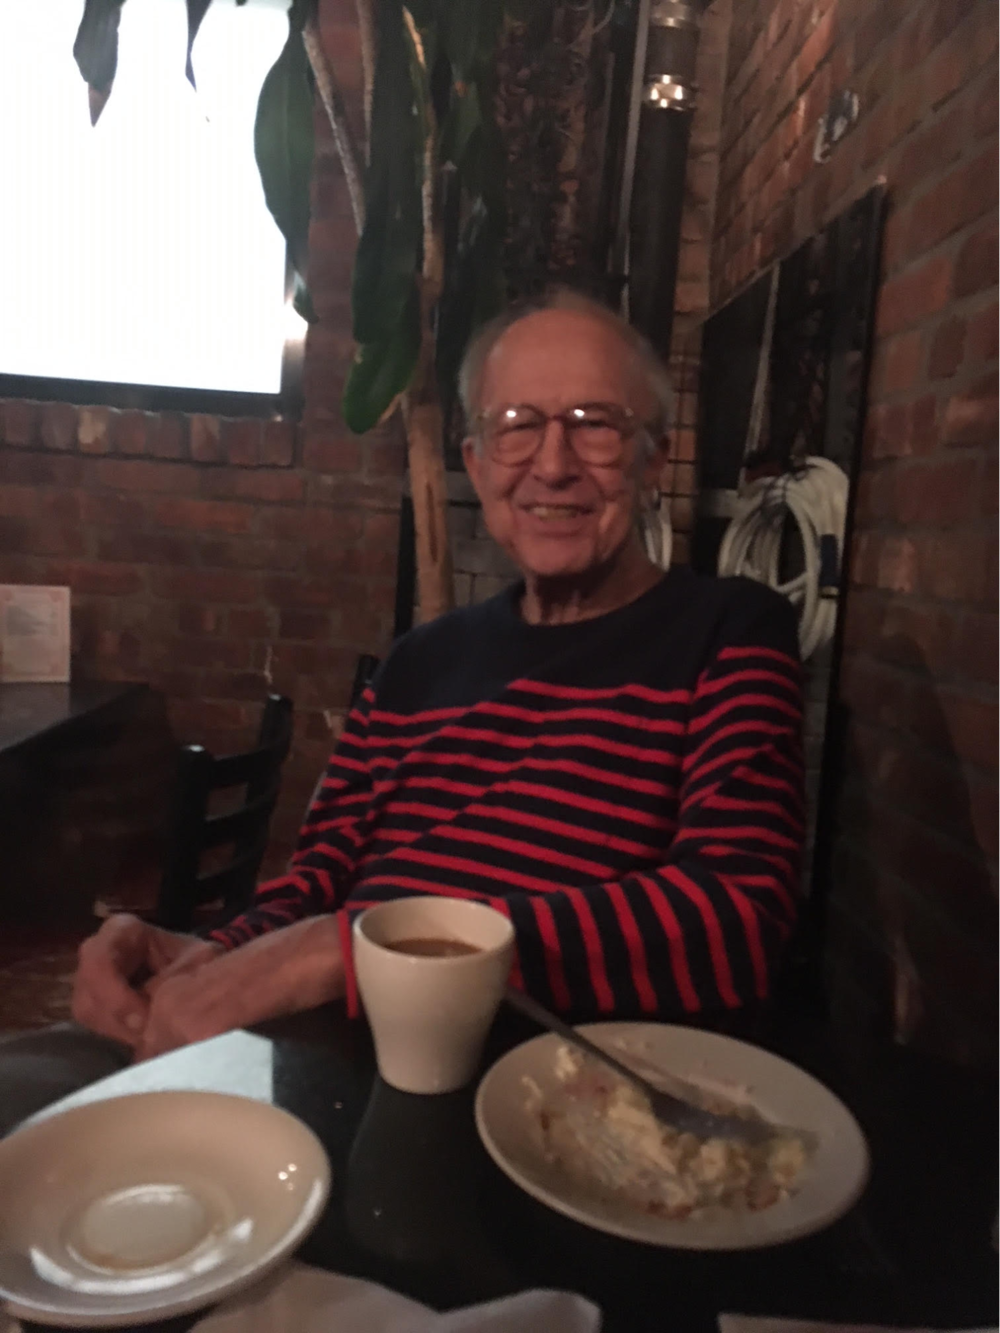 Robert Heide at Rocco's, 2018